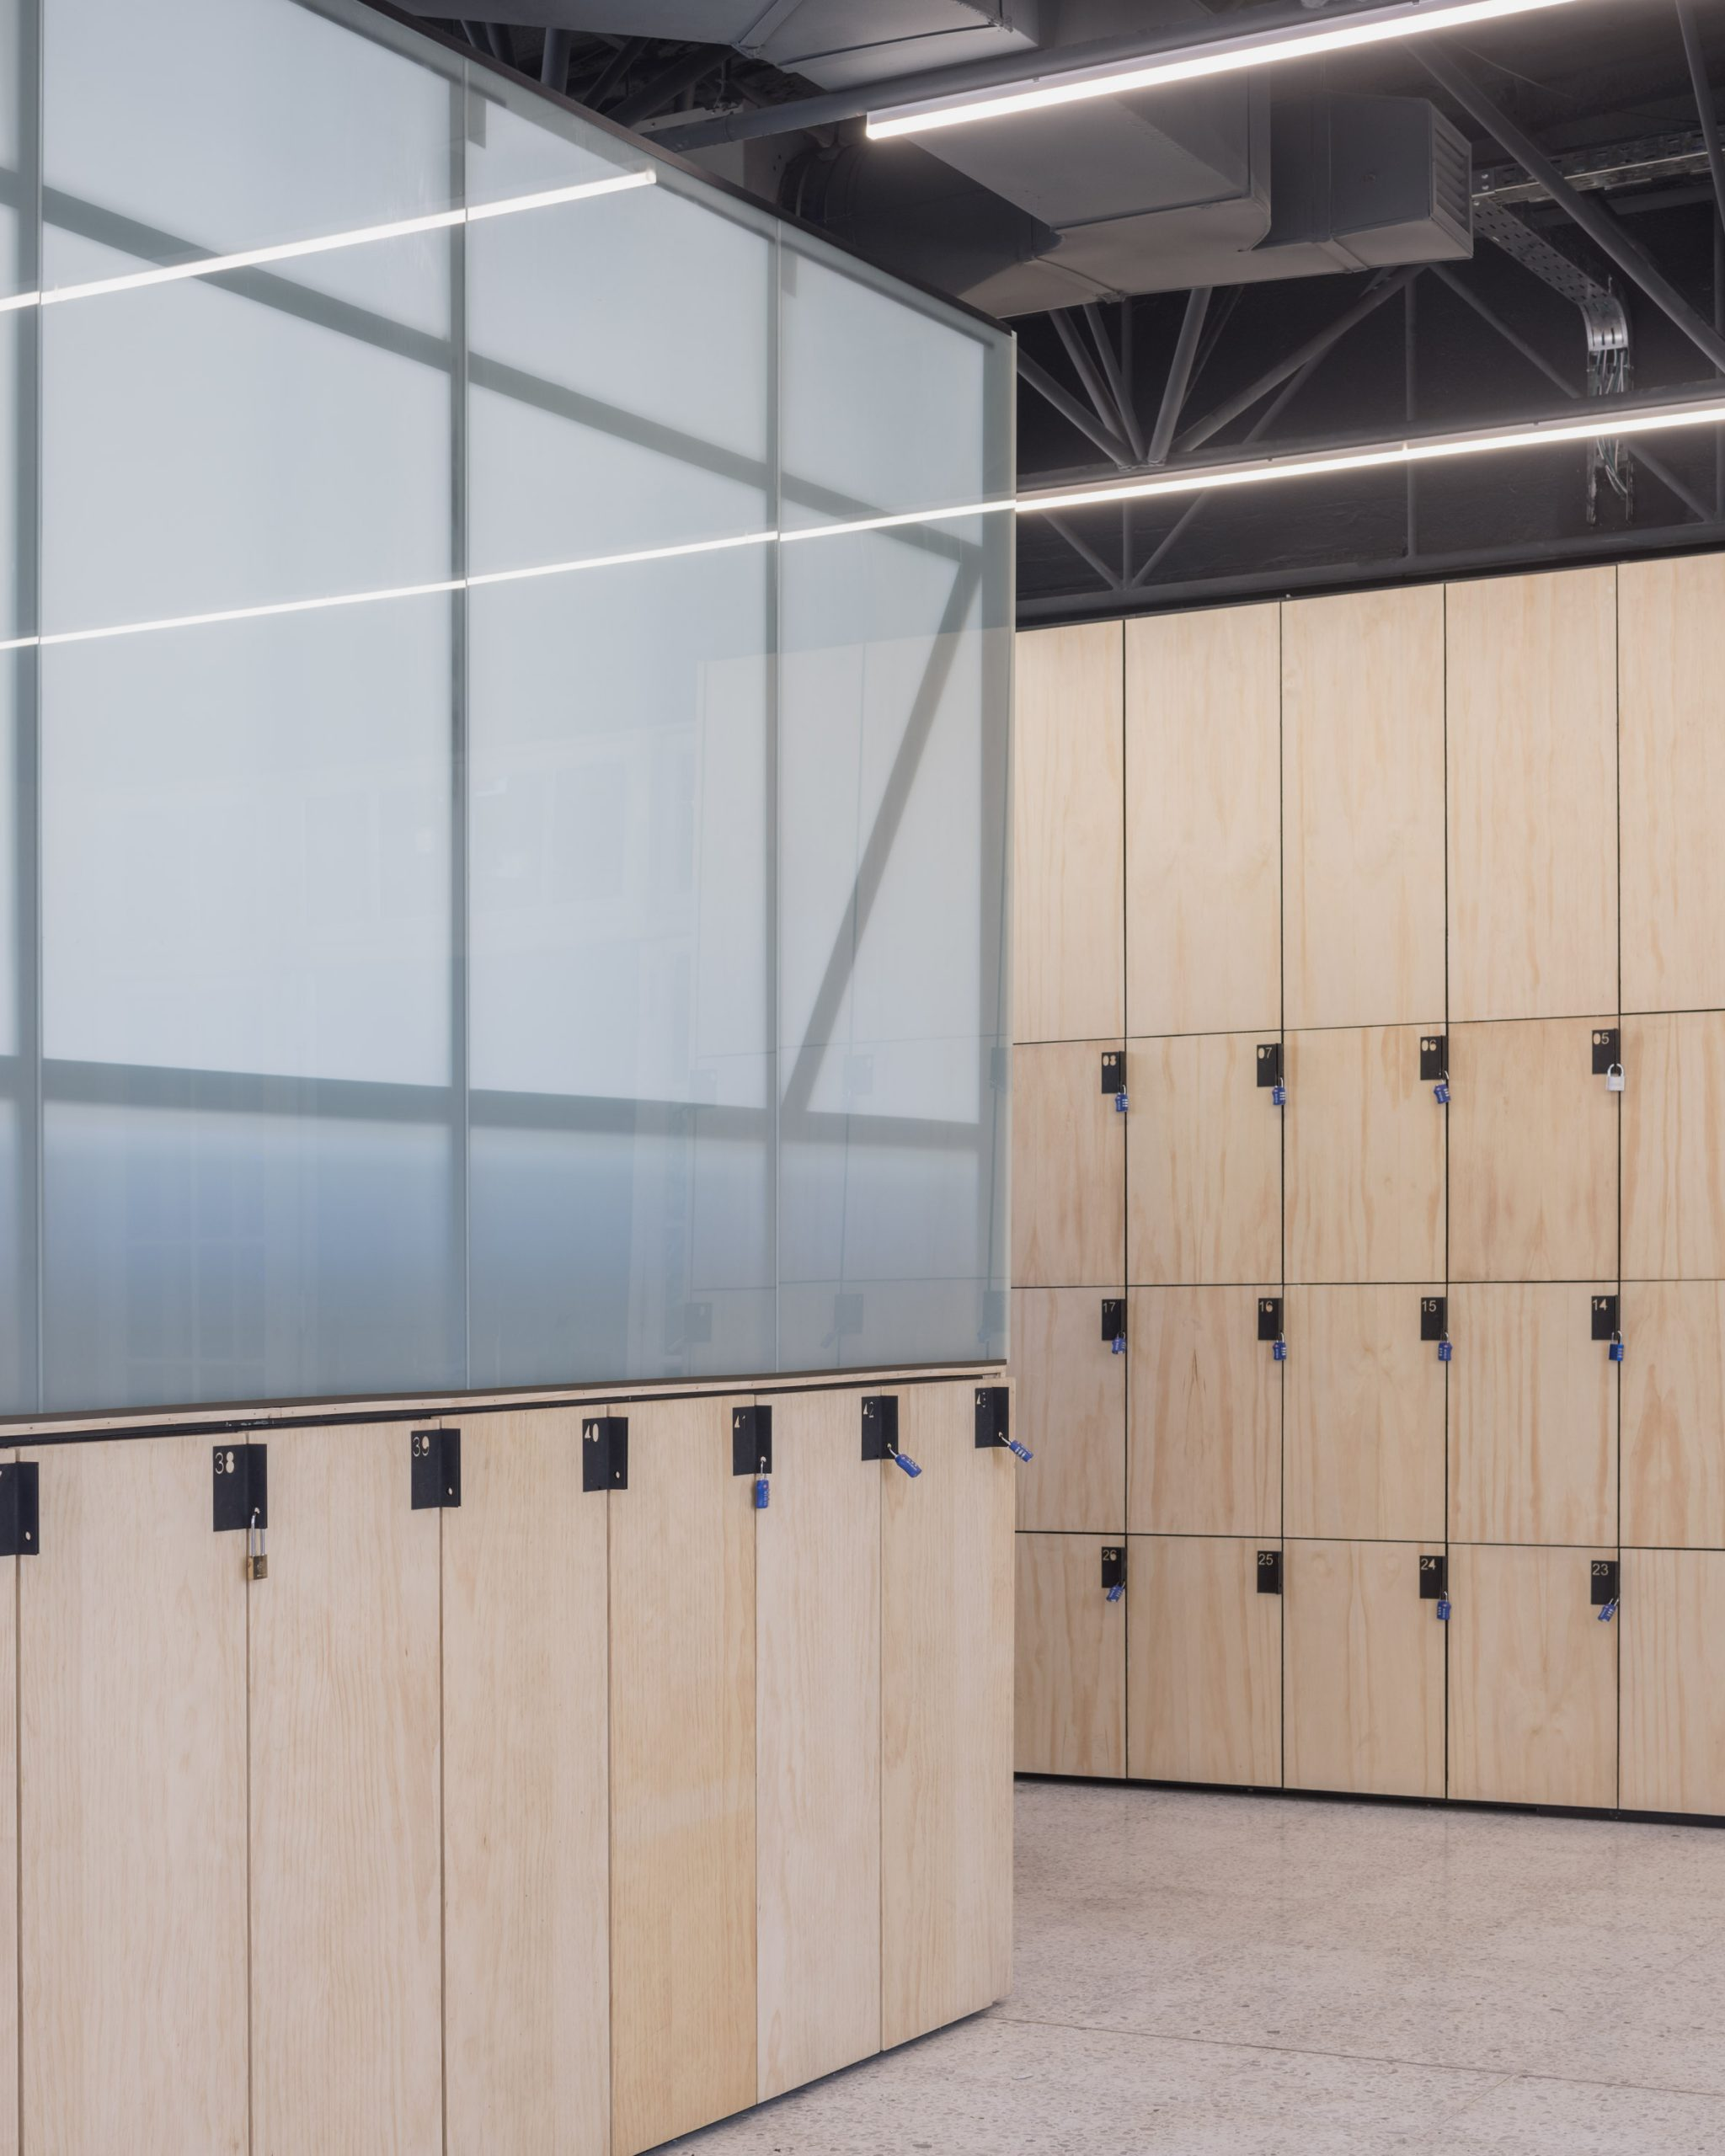 Fintual's office by Studio Cáceres Lazo is lined with functional lockers